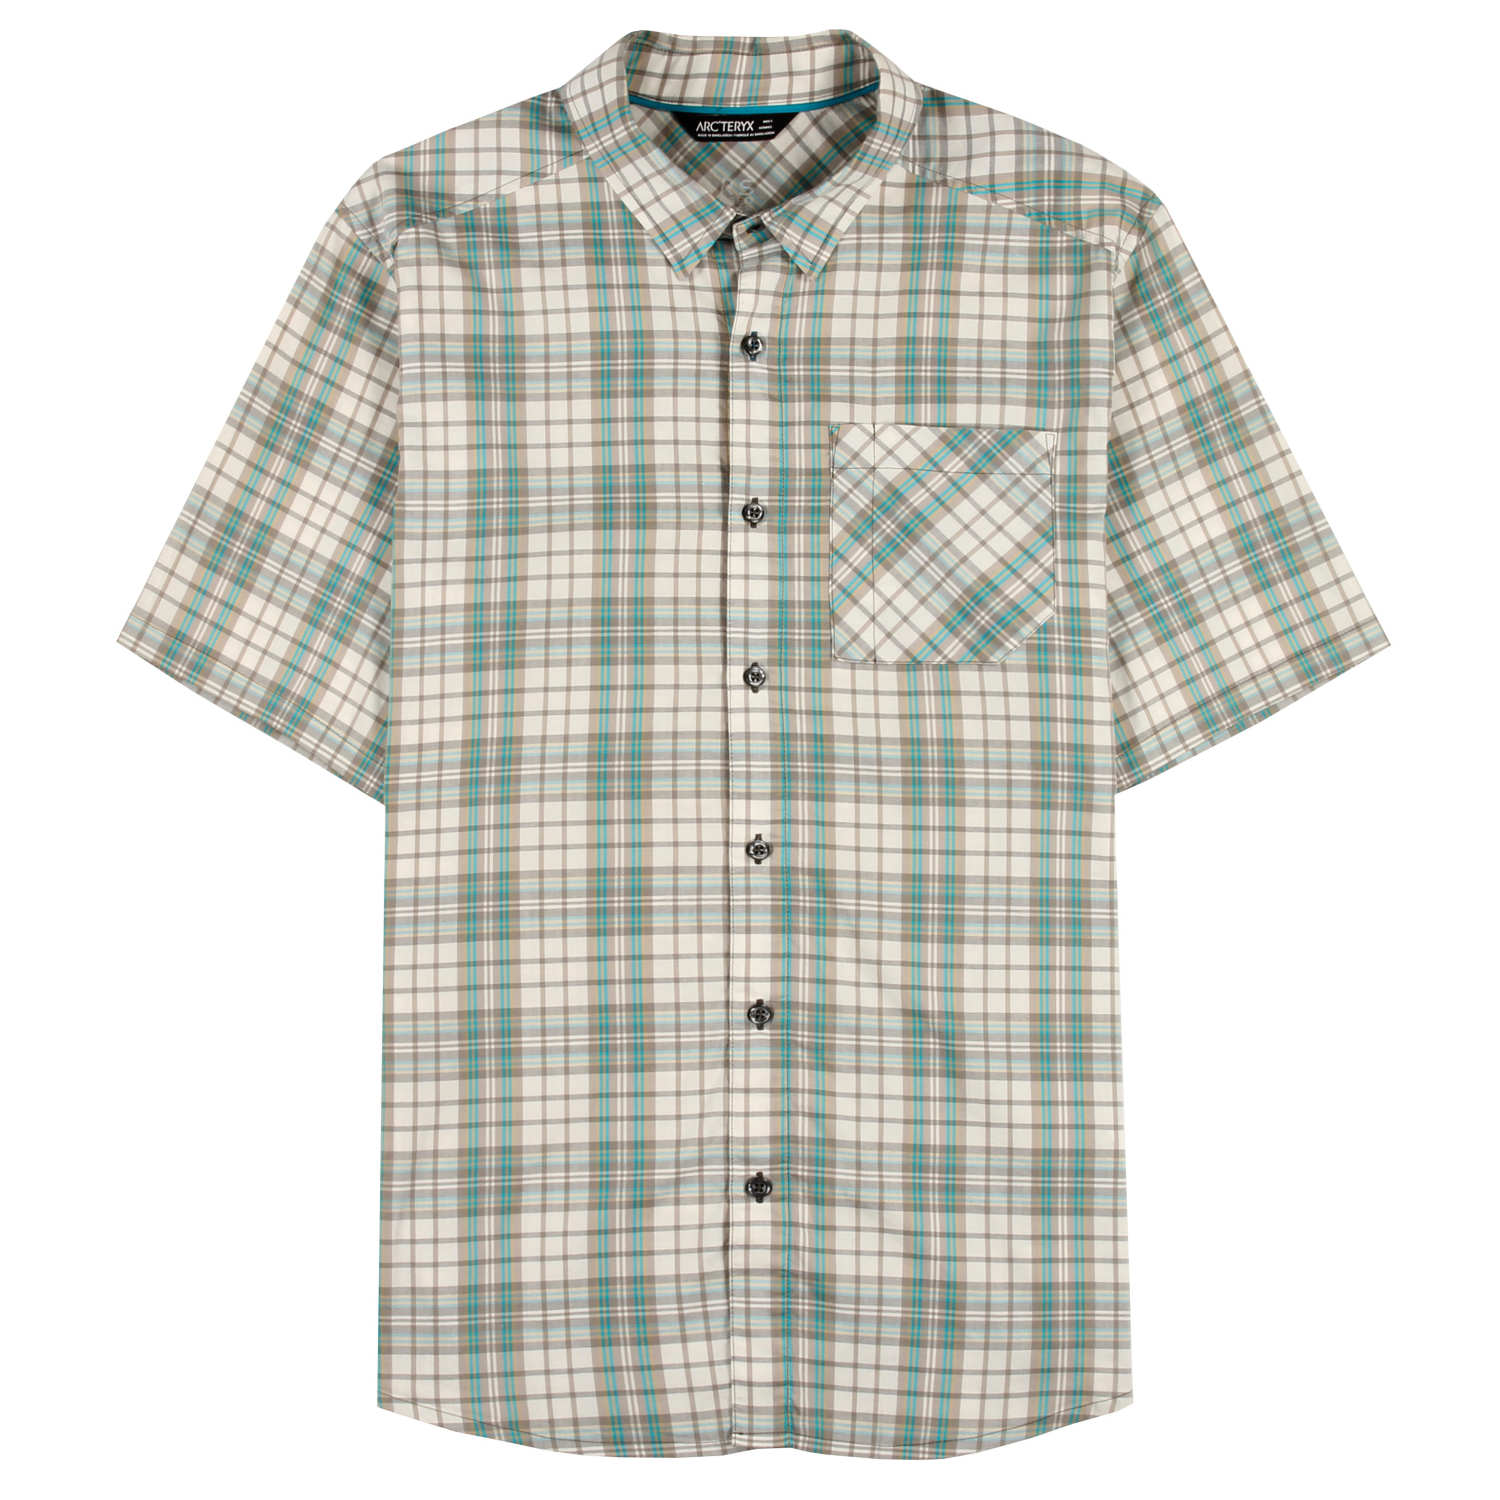 Pathline SS Shirt Men's